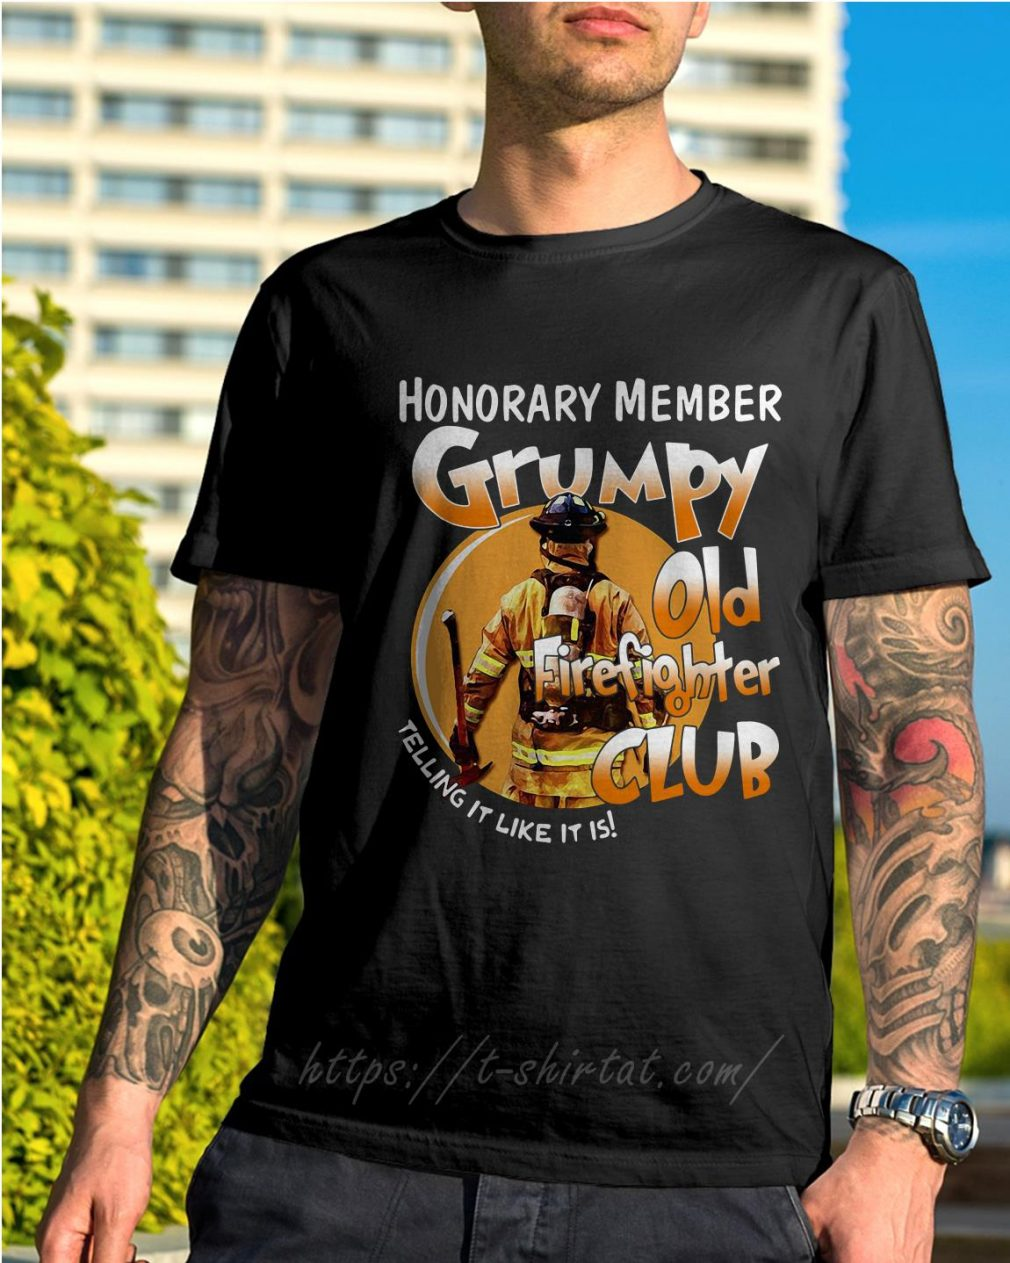 Honorary member grumpy old firefighter club telling it like it is shirt